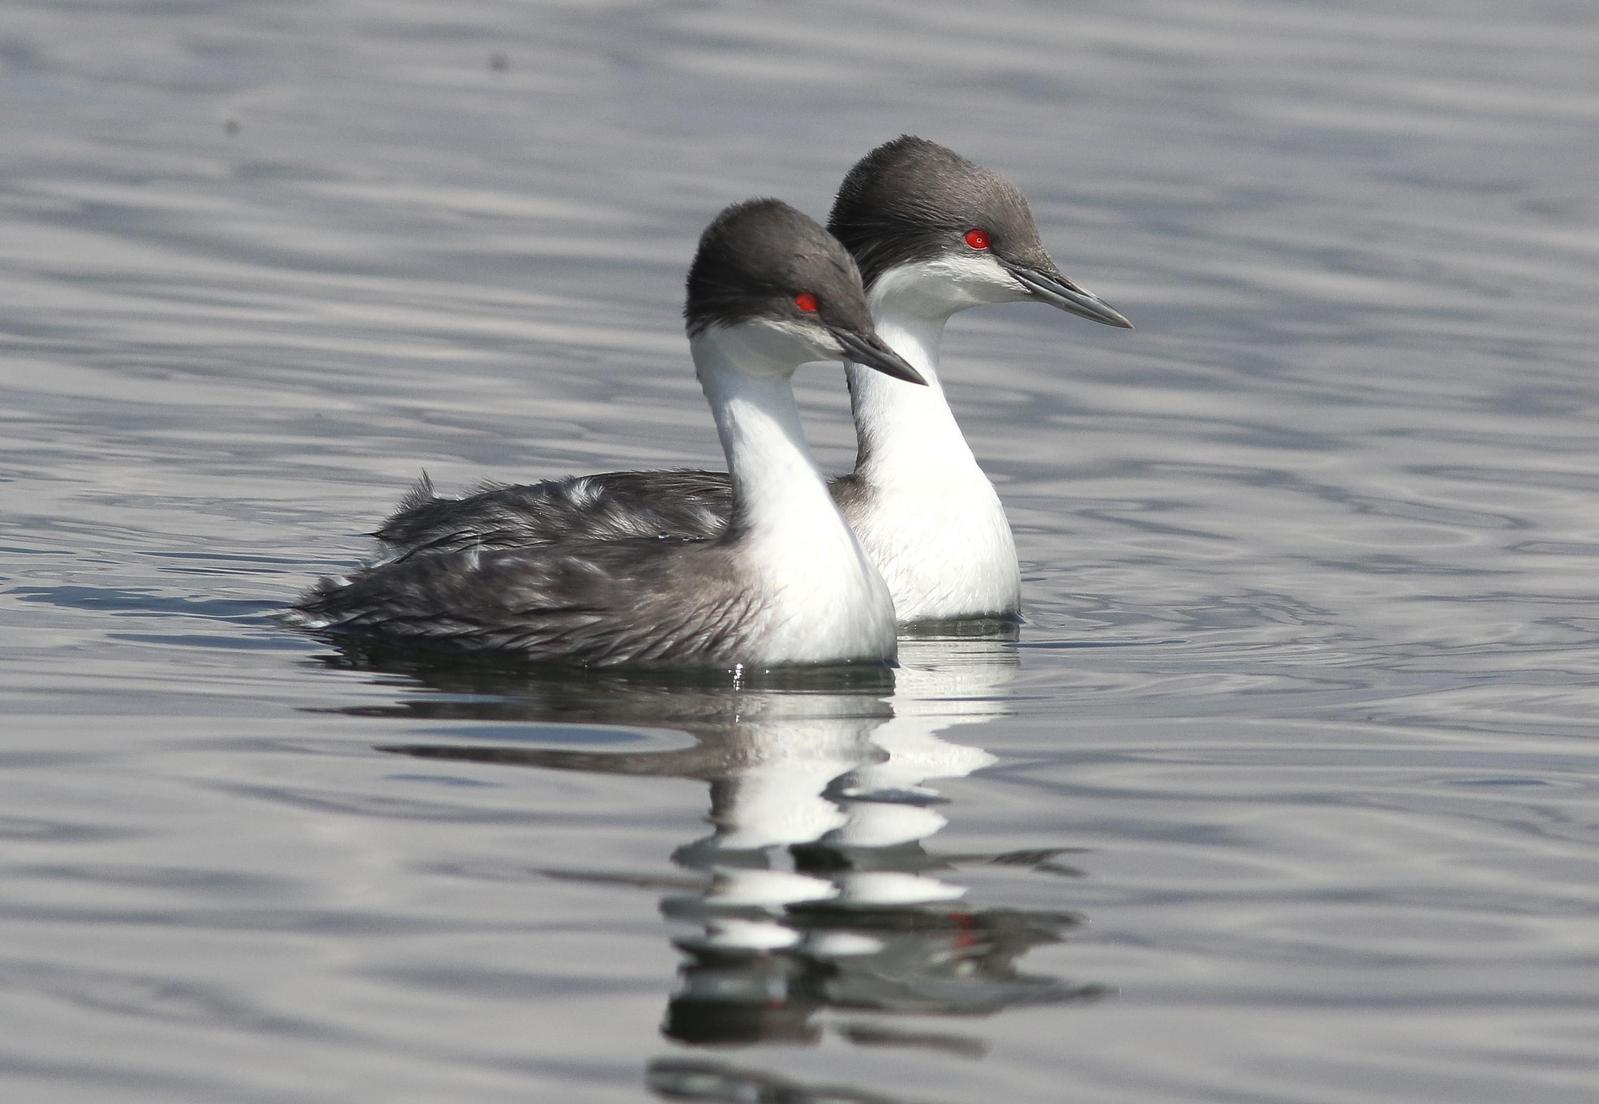 Junin Grebe Photo by Leonardo Garrigues